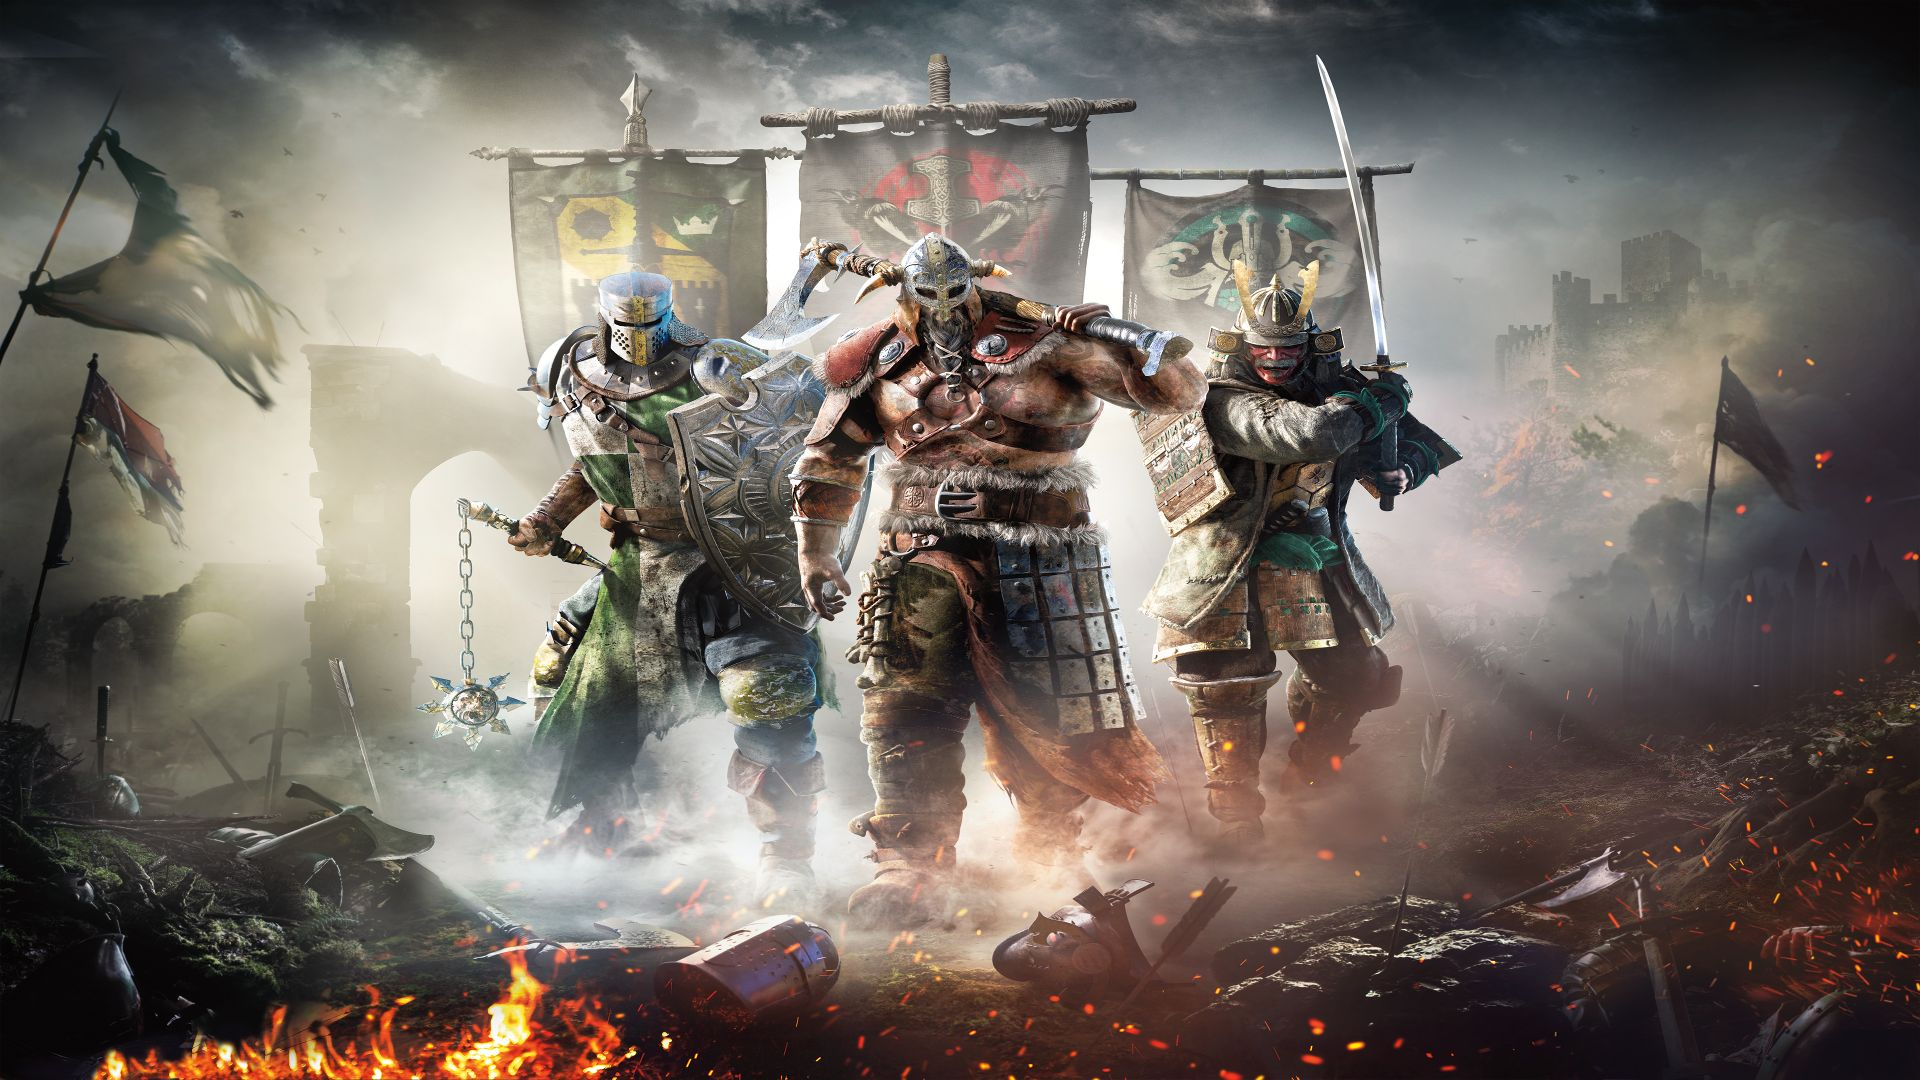 For Honor finally gets dedicated servers next month